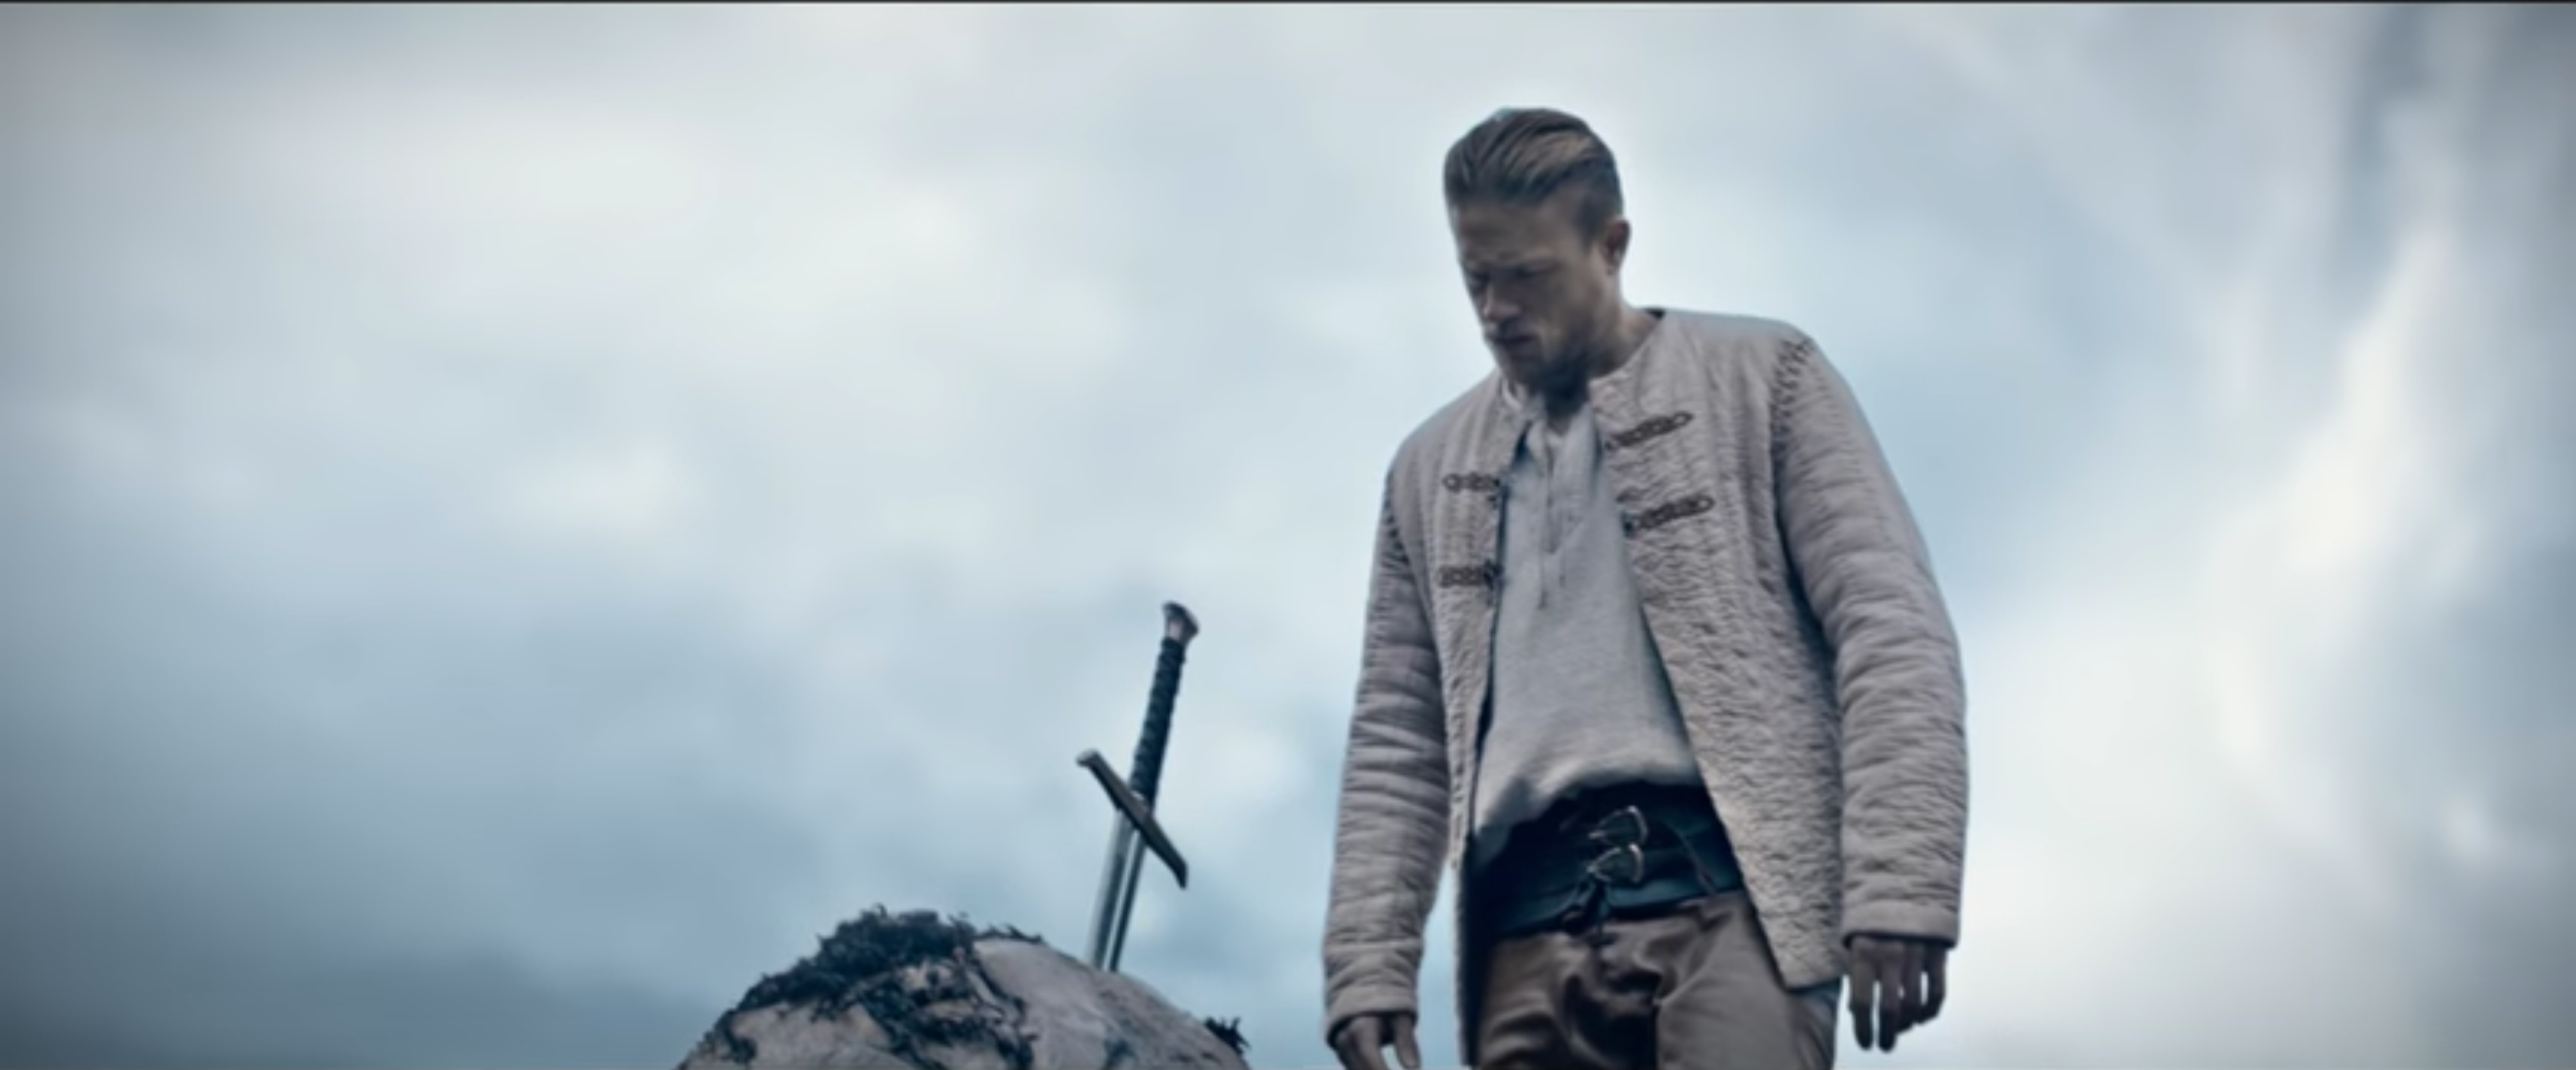 King arthur producer on reinventing a classic sequel plans king arthur legend of the sword charlie hunnam amipublicfo Choice Image